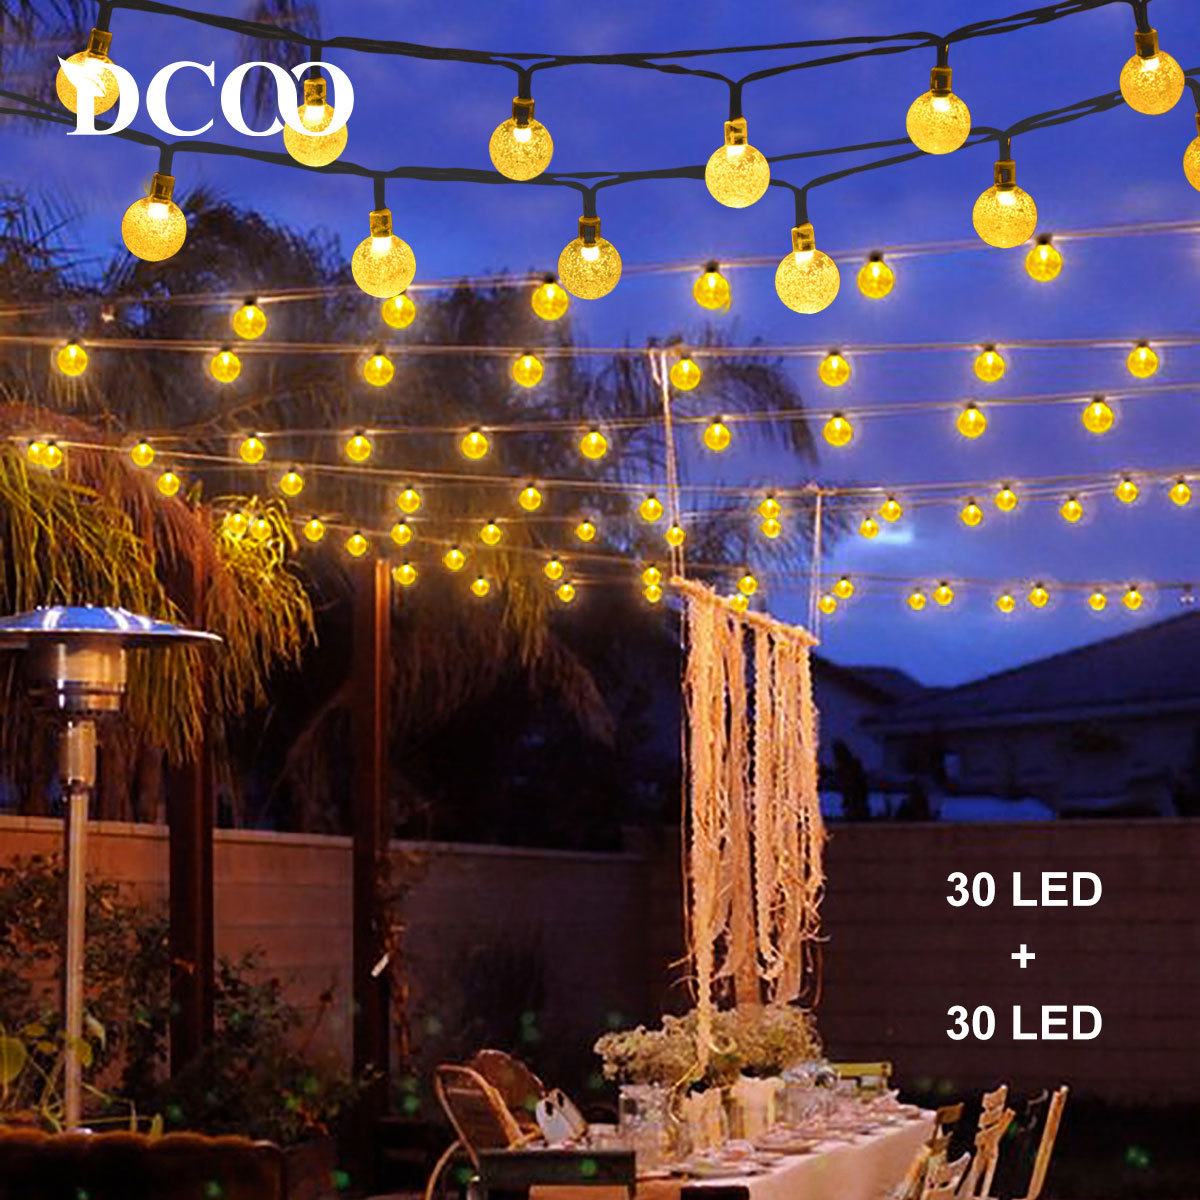 Outdoor Bistro Solar Powered Globe String Lights: Aliexpress.com : Buy Dcoo 2 Pieces Solar Powered Globe LED